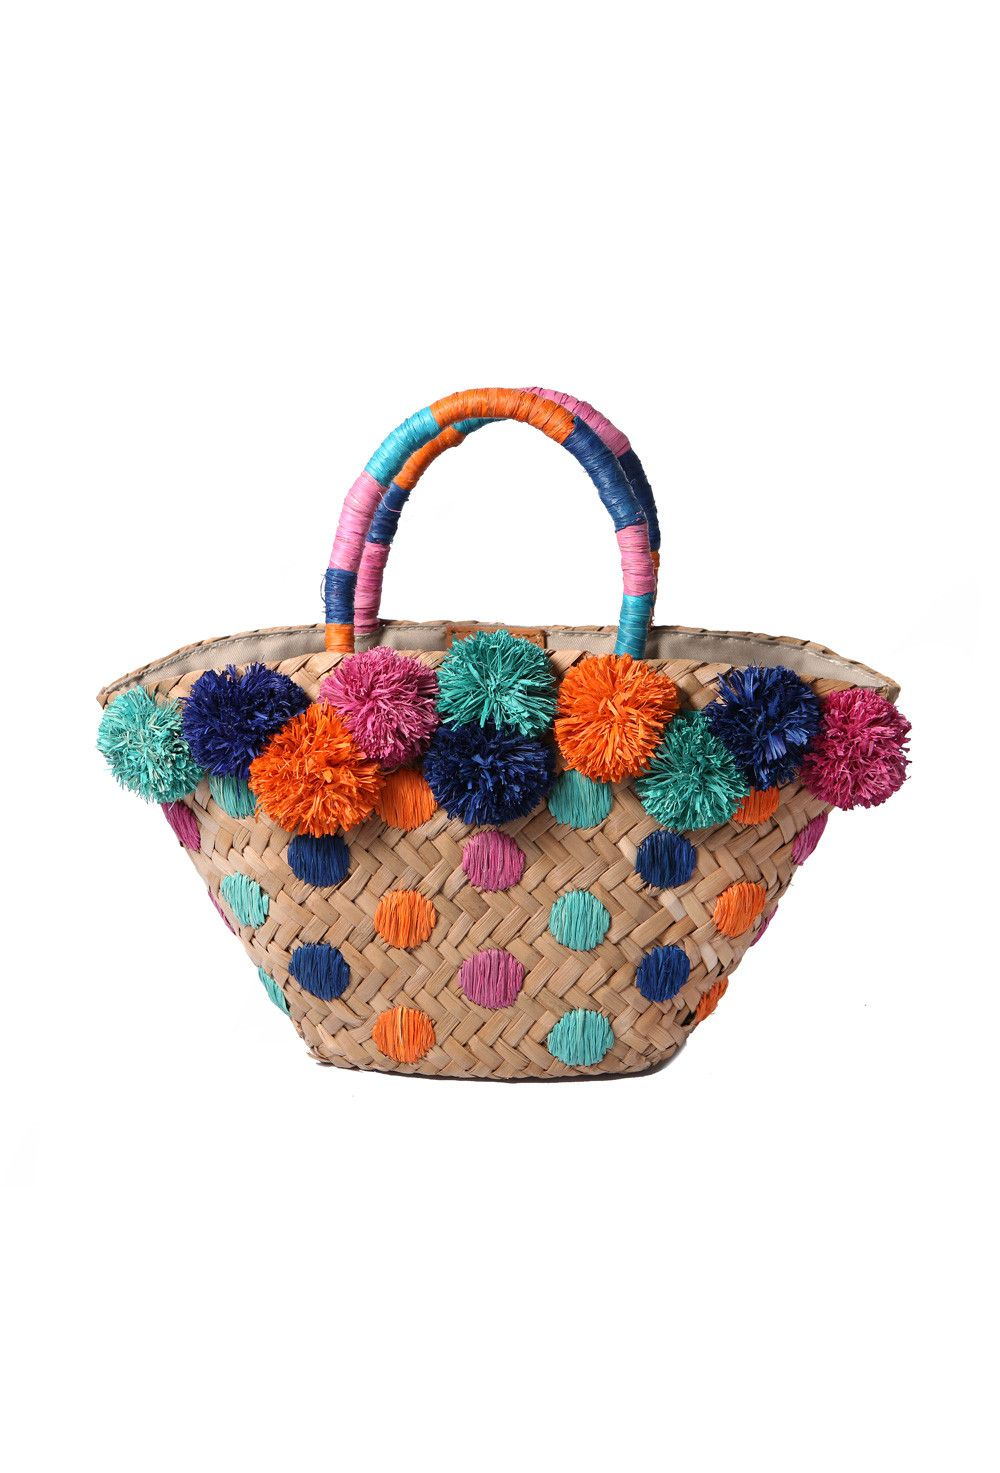 Mini Chiquita Basket Bag With Pom Poms Hessian Bags Straw Tote Summer